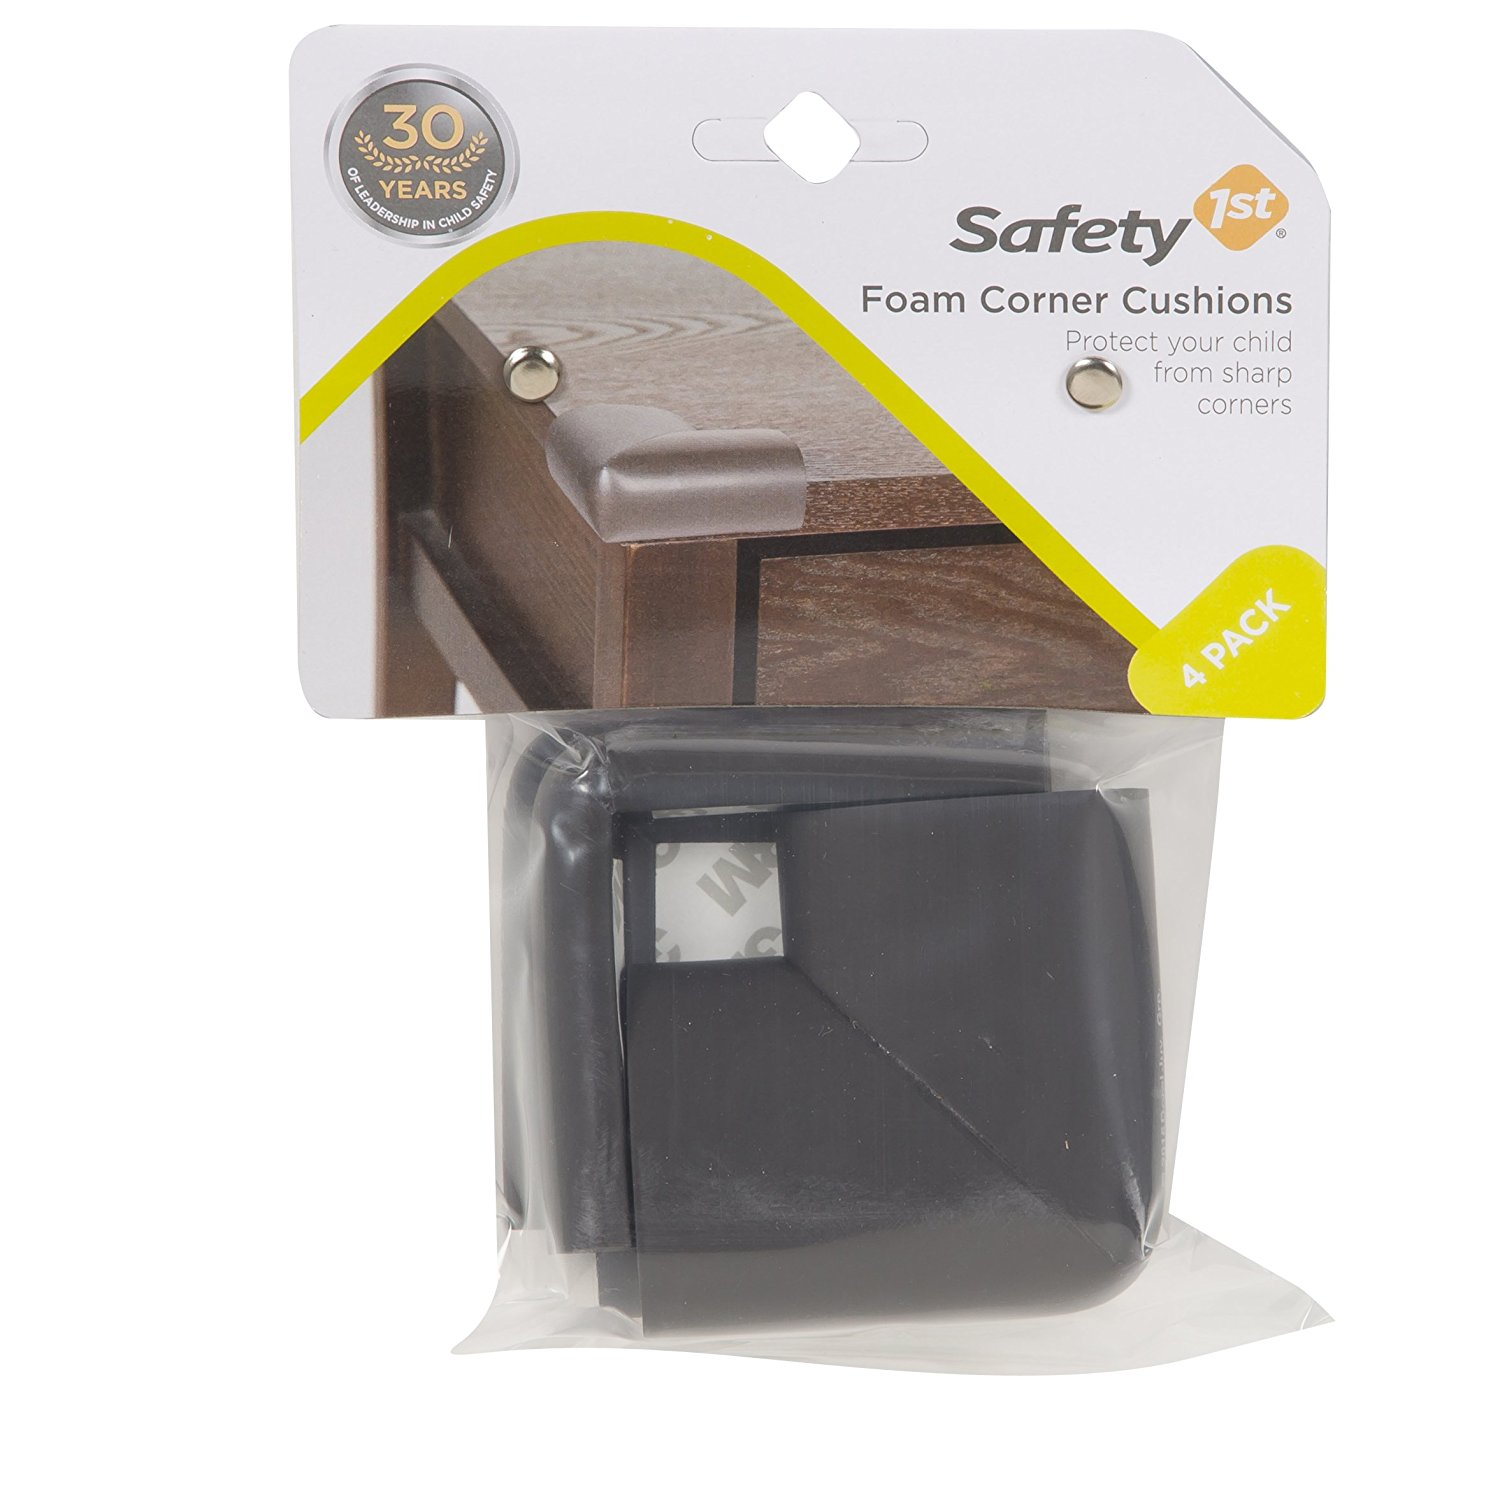 Safety 1st Foam Corner Cushion - Décor - 4 Pack